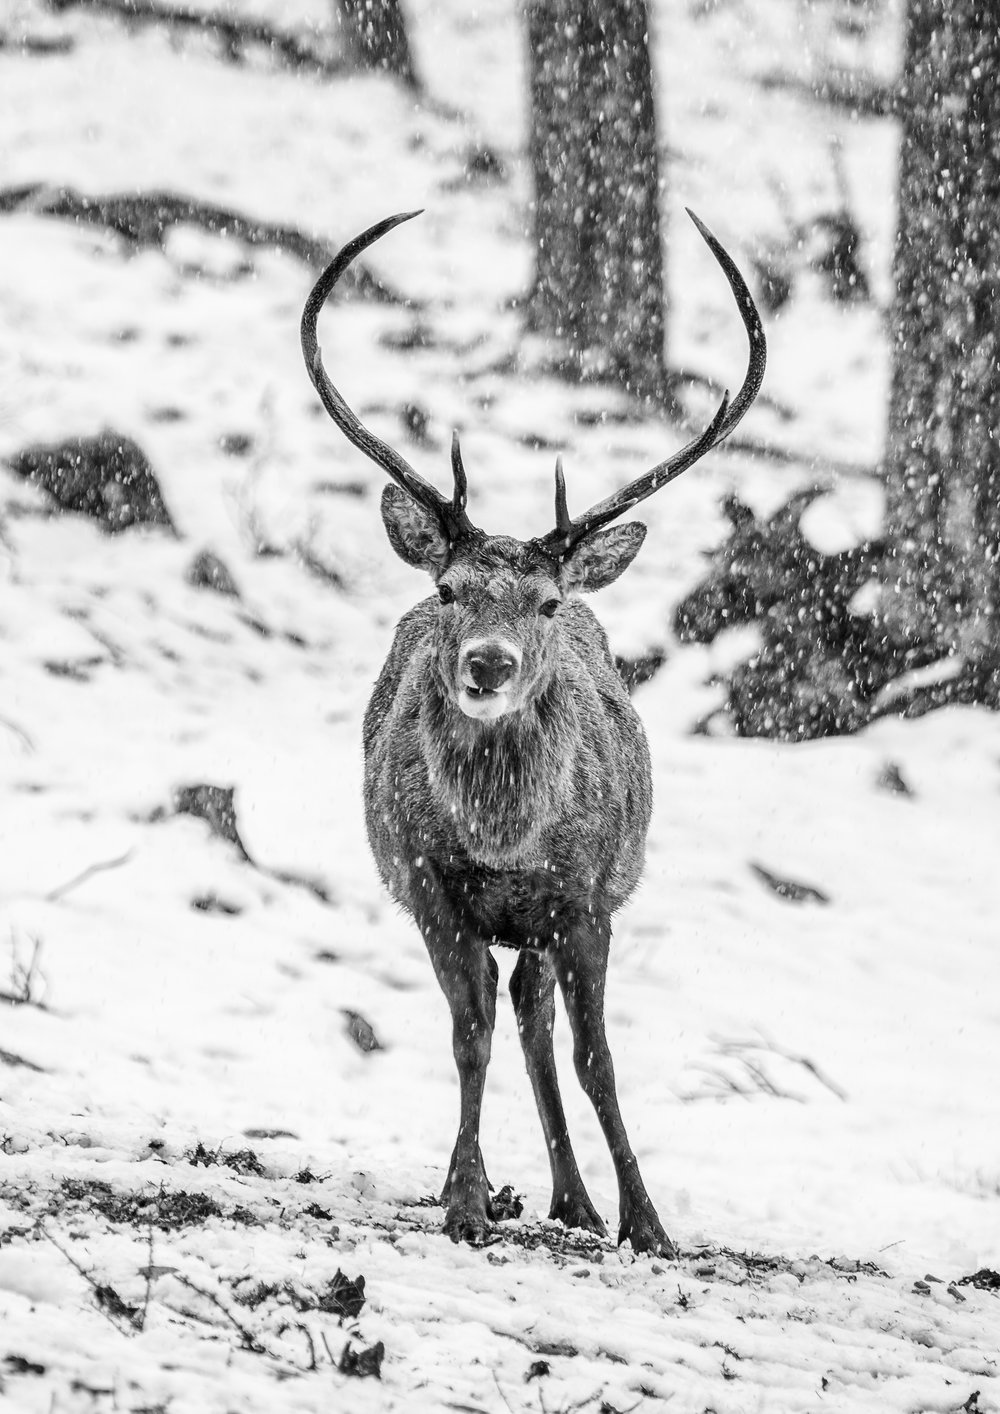 chris knight - Aviemore - Scotland2 - red deer stag.jpg